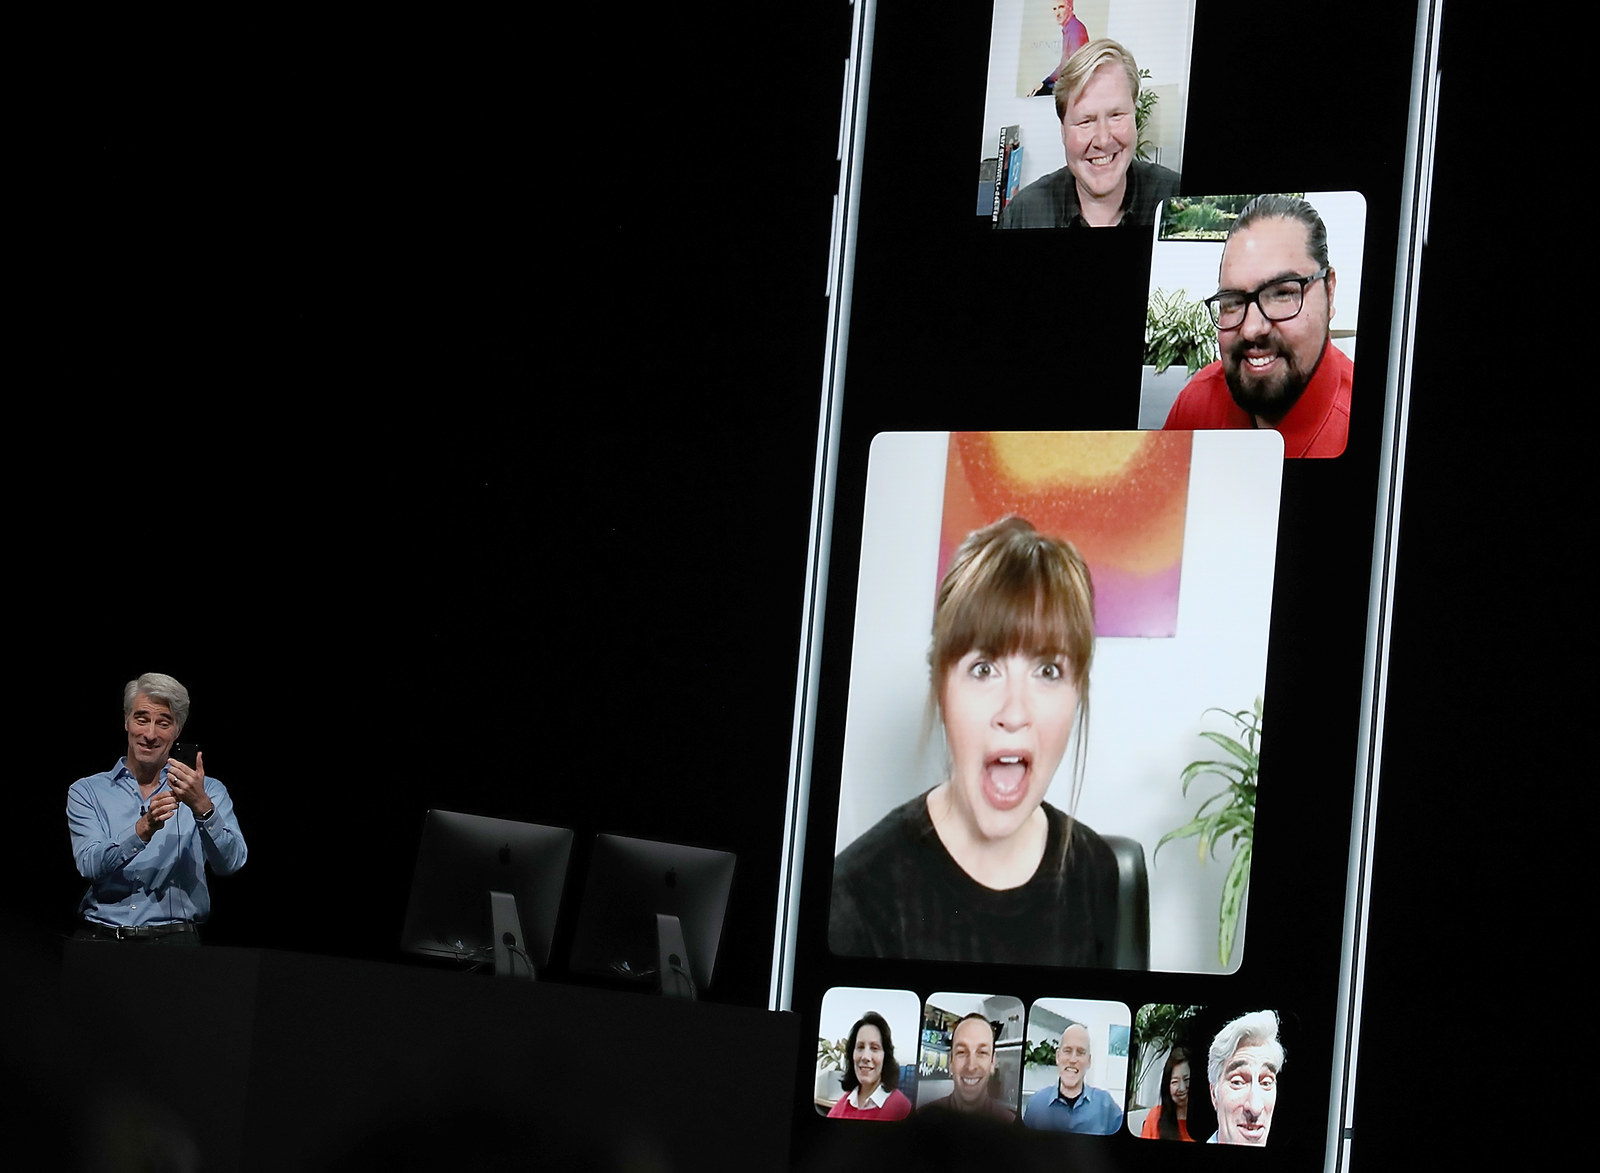 Apple's Craig Federighi demonstrates group FaceTime during the 2018 Apple Worldwide Developer Conference on June 4, 2018 in San Jose, California.